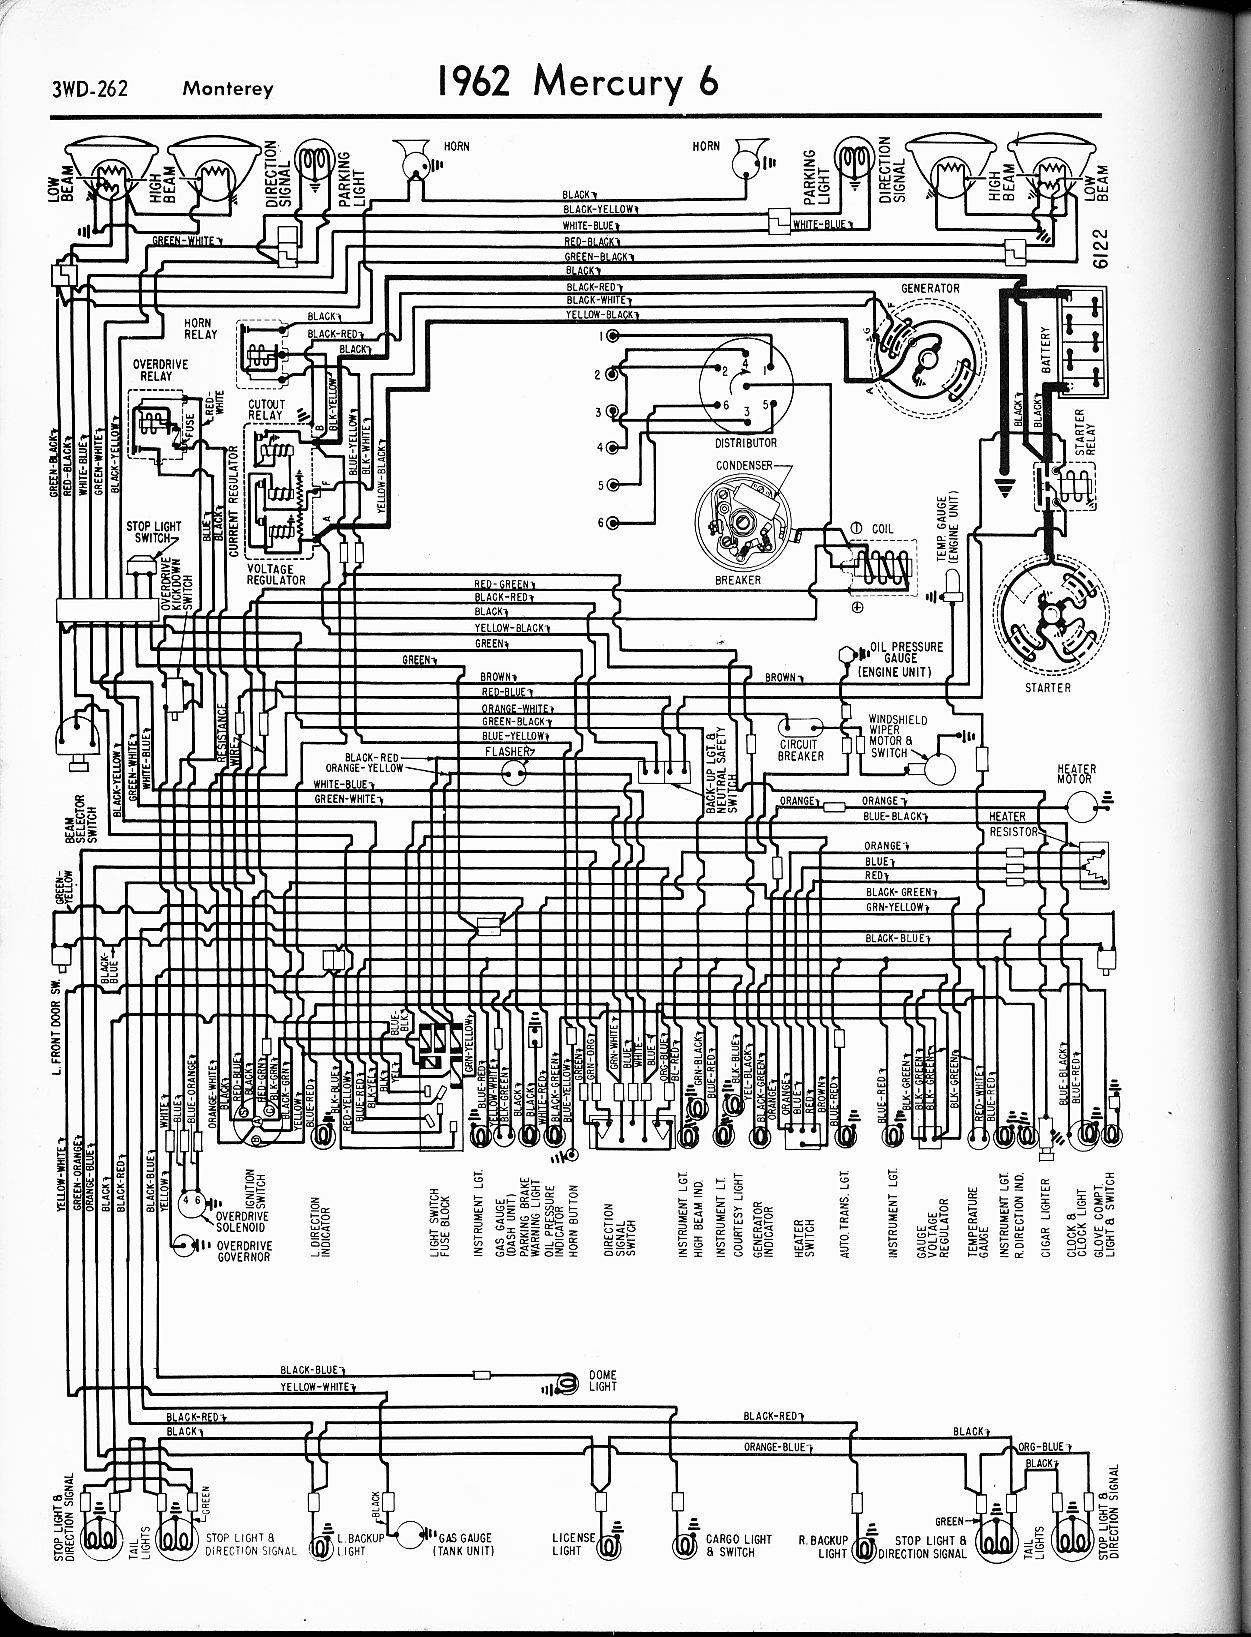 hight resolution of 1968 ford thunderbird general fuse box diagram wiring diagram online 5r110 solenoid diagram 1962 ford fuse